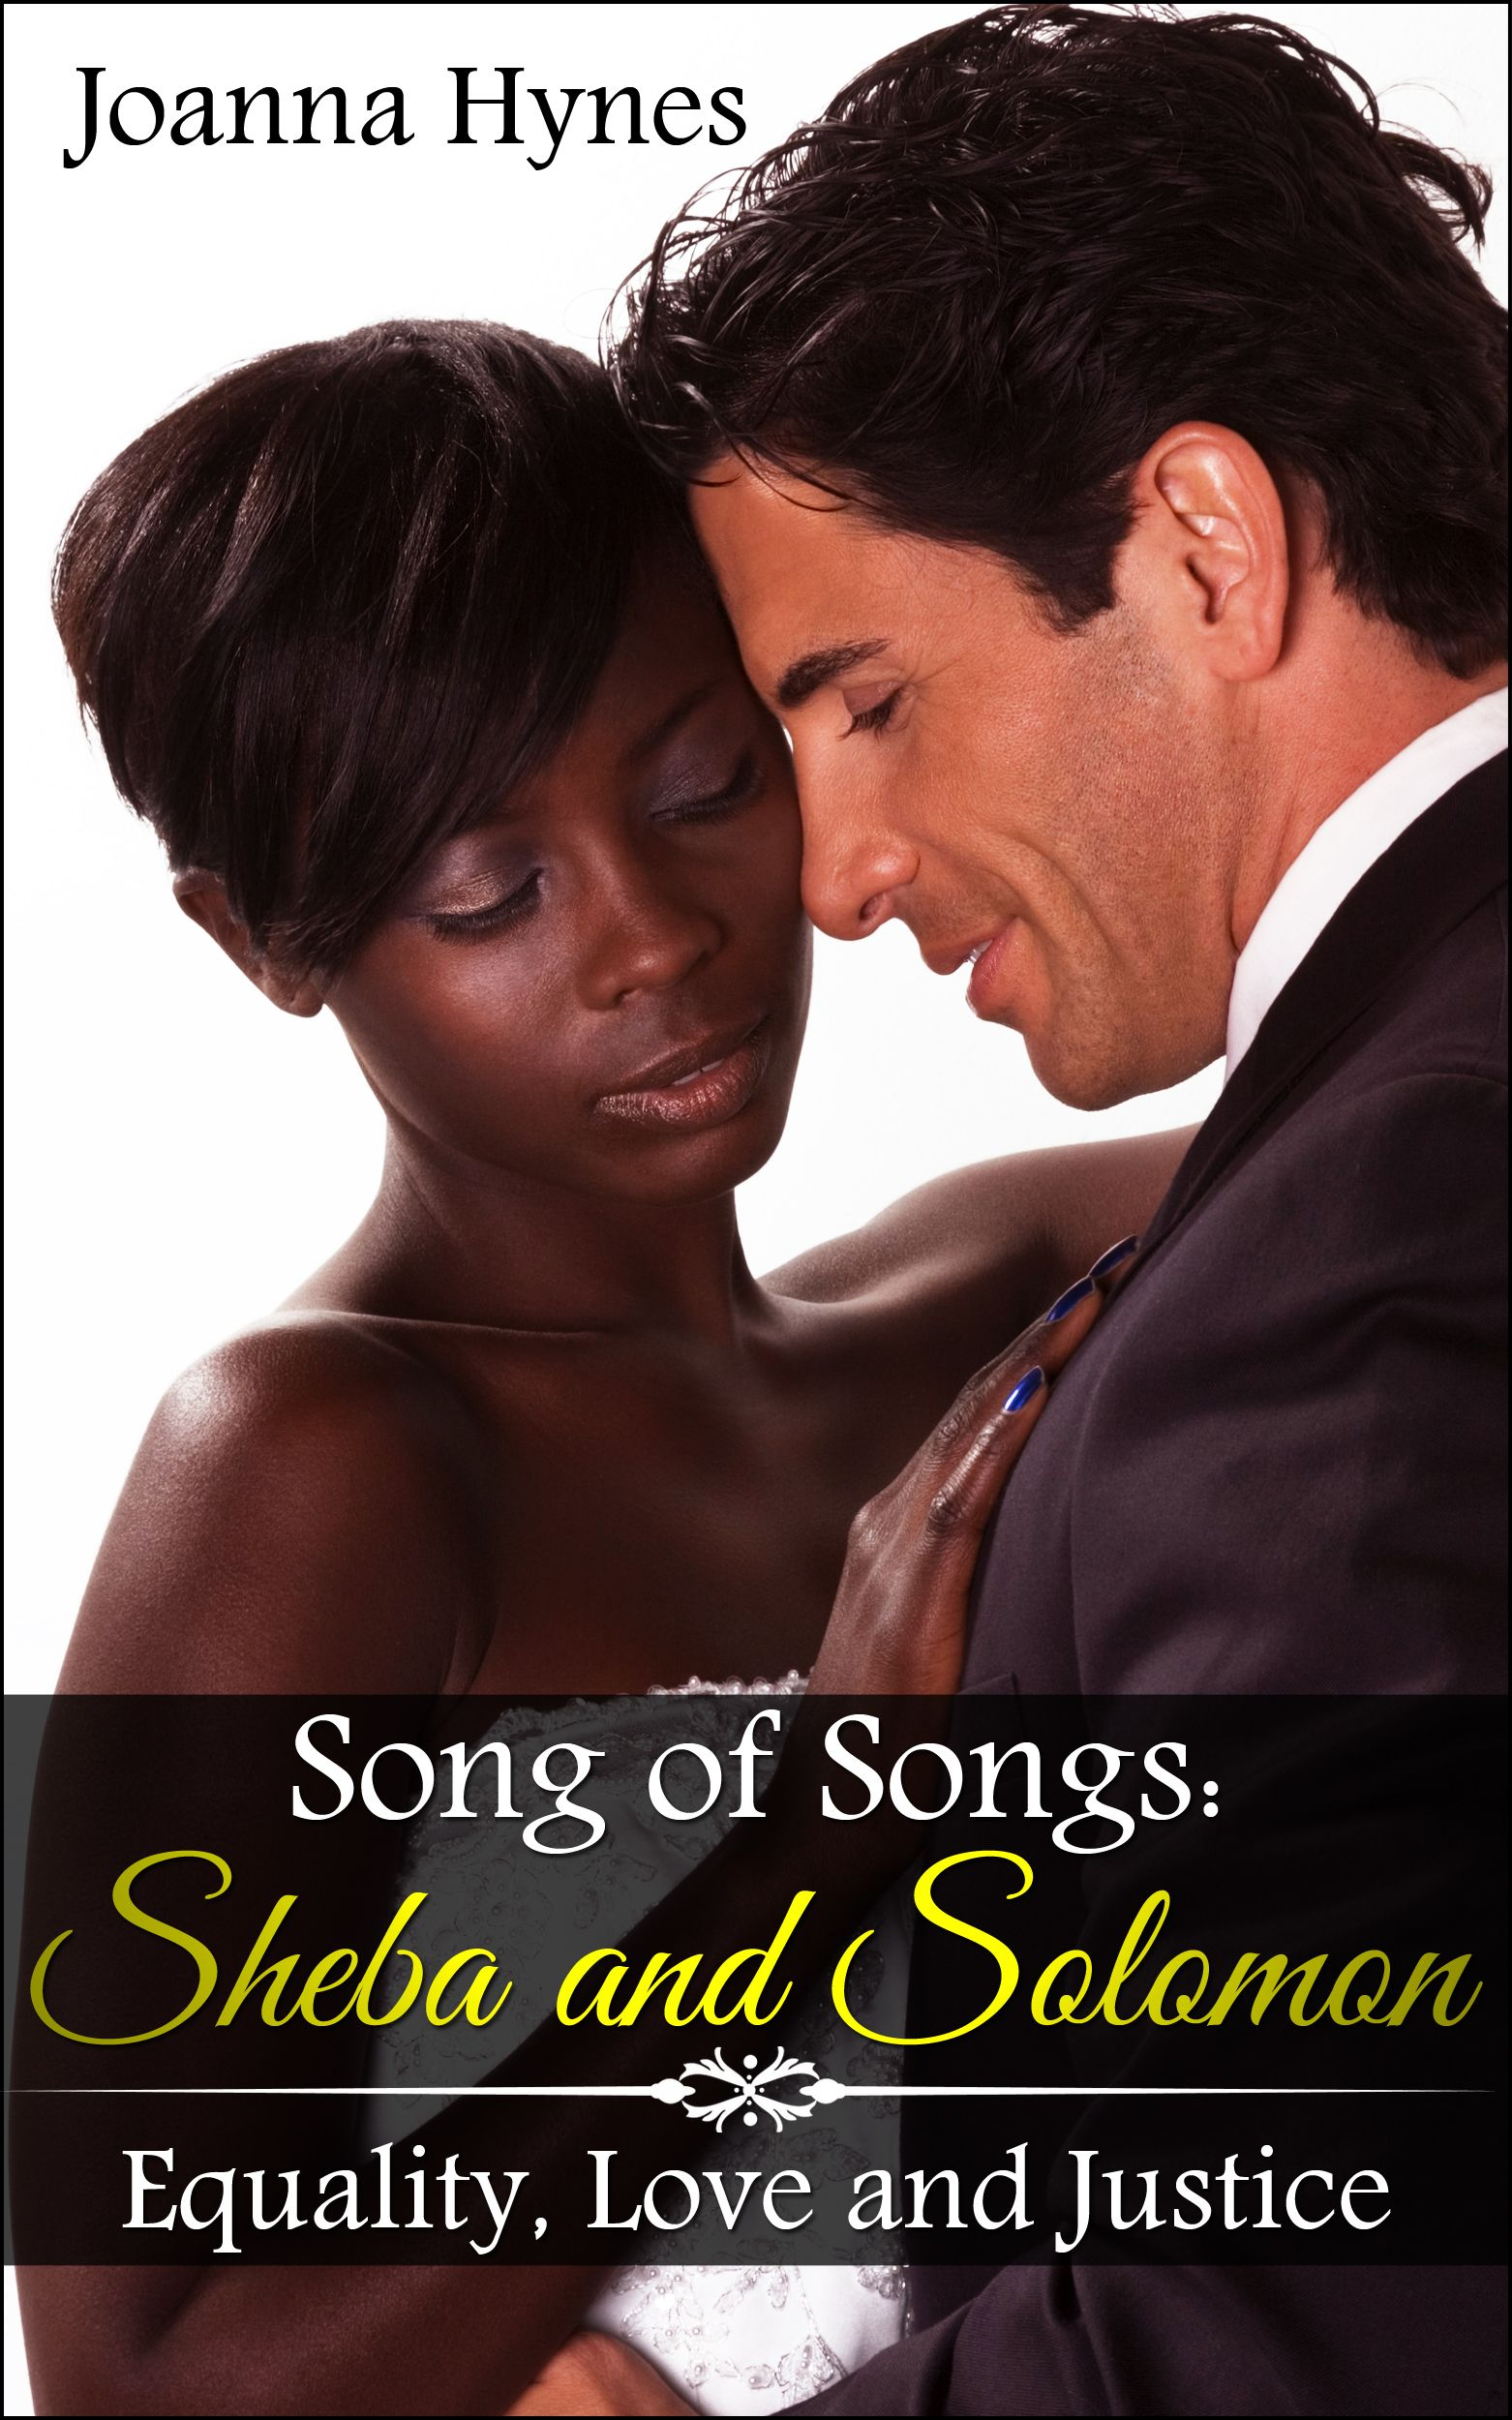 Interracial Romance Books Black Man White Woman